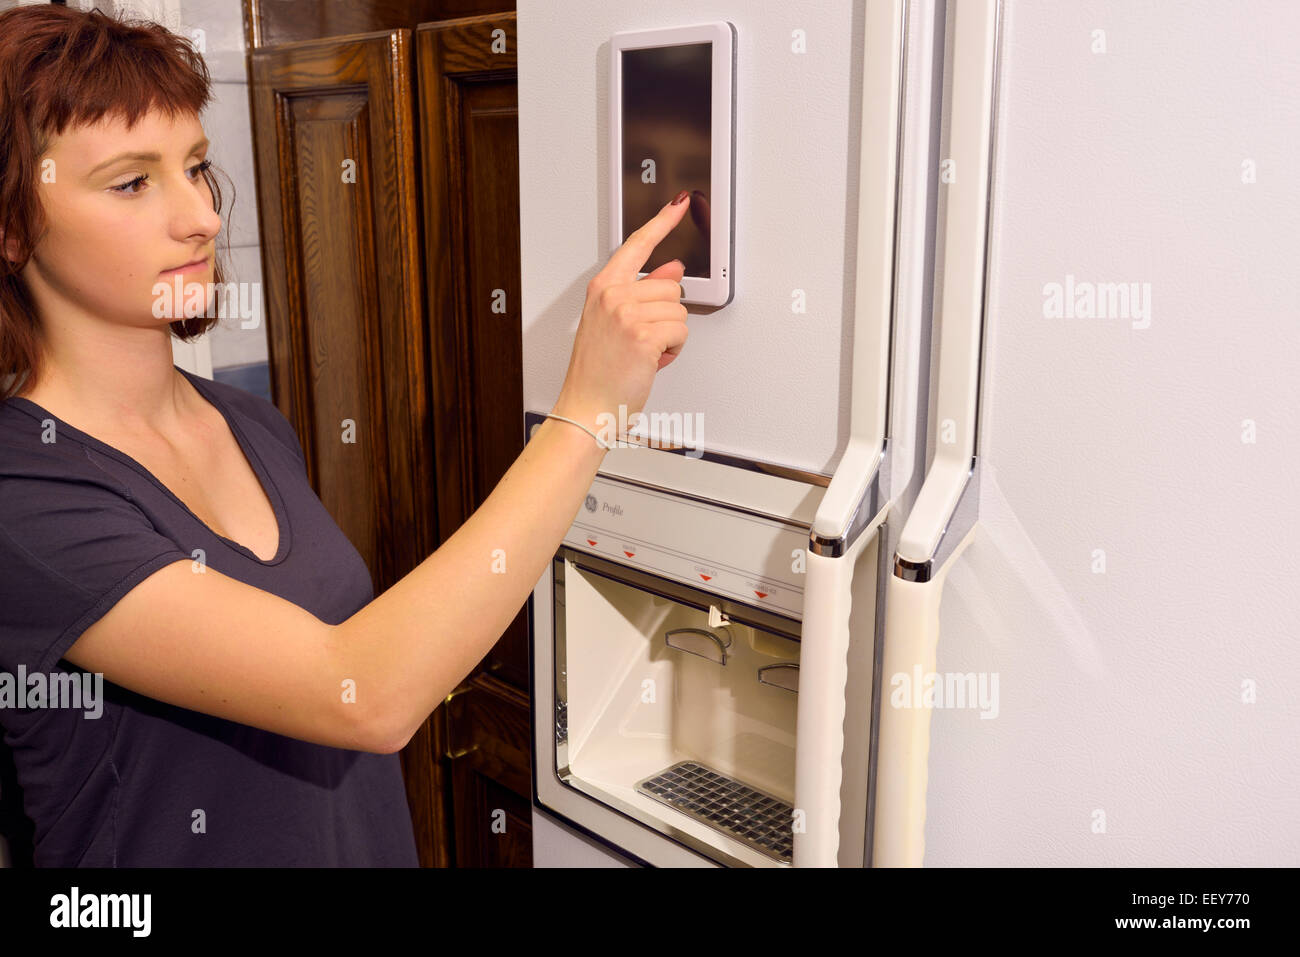 Young woman operating touch pad on web enabled refrigerator internet of things appliance in kitchen - Stock Image